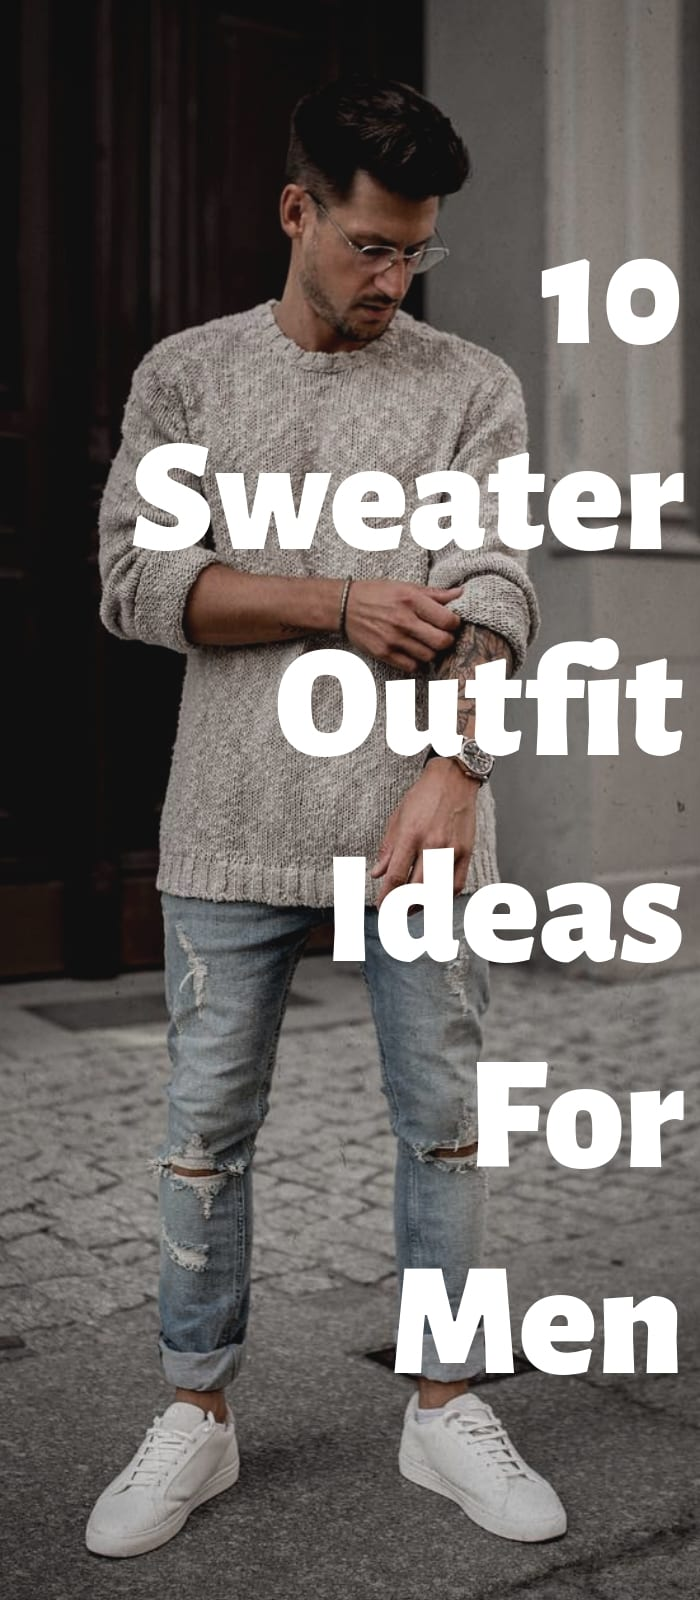 10 Sweater Outfit Ideas For Men!